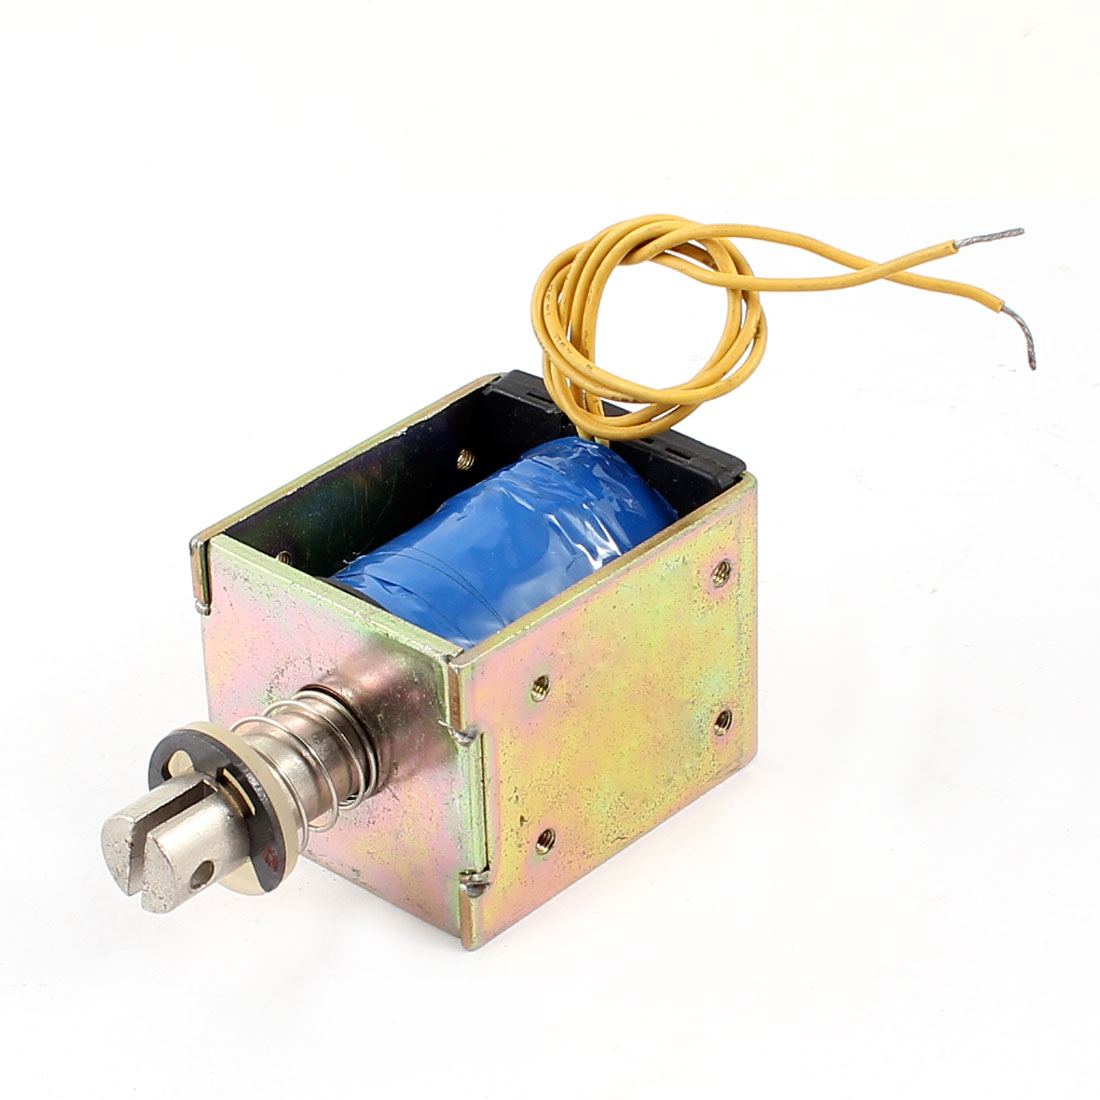 10mm/300g 7.57W Power Wired Open Frame Pull Type Solenoid Electromagnet DC 12V 0.63A